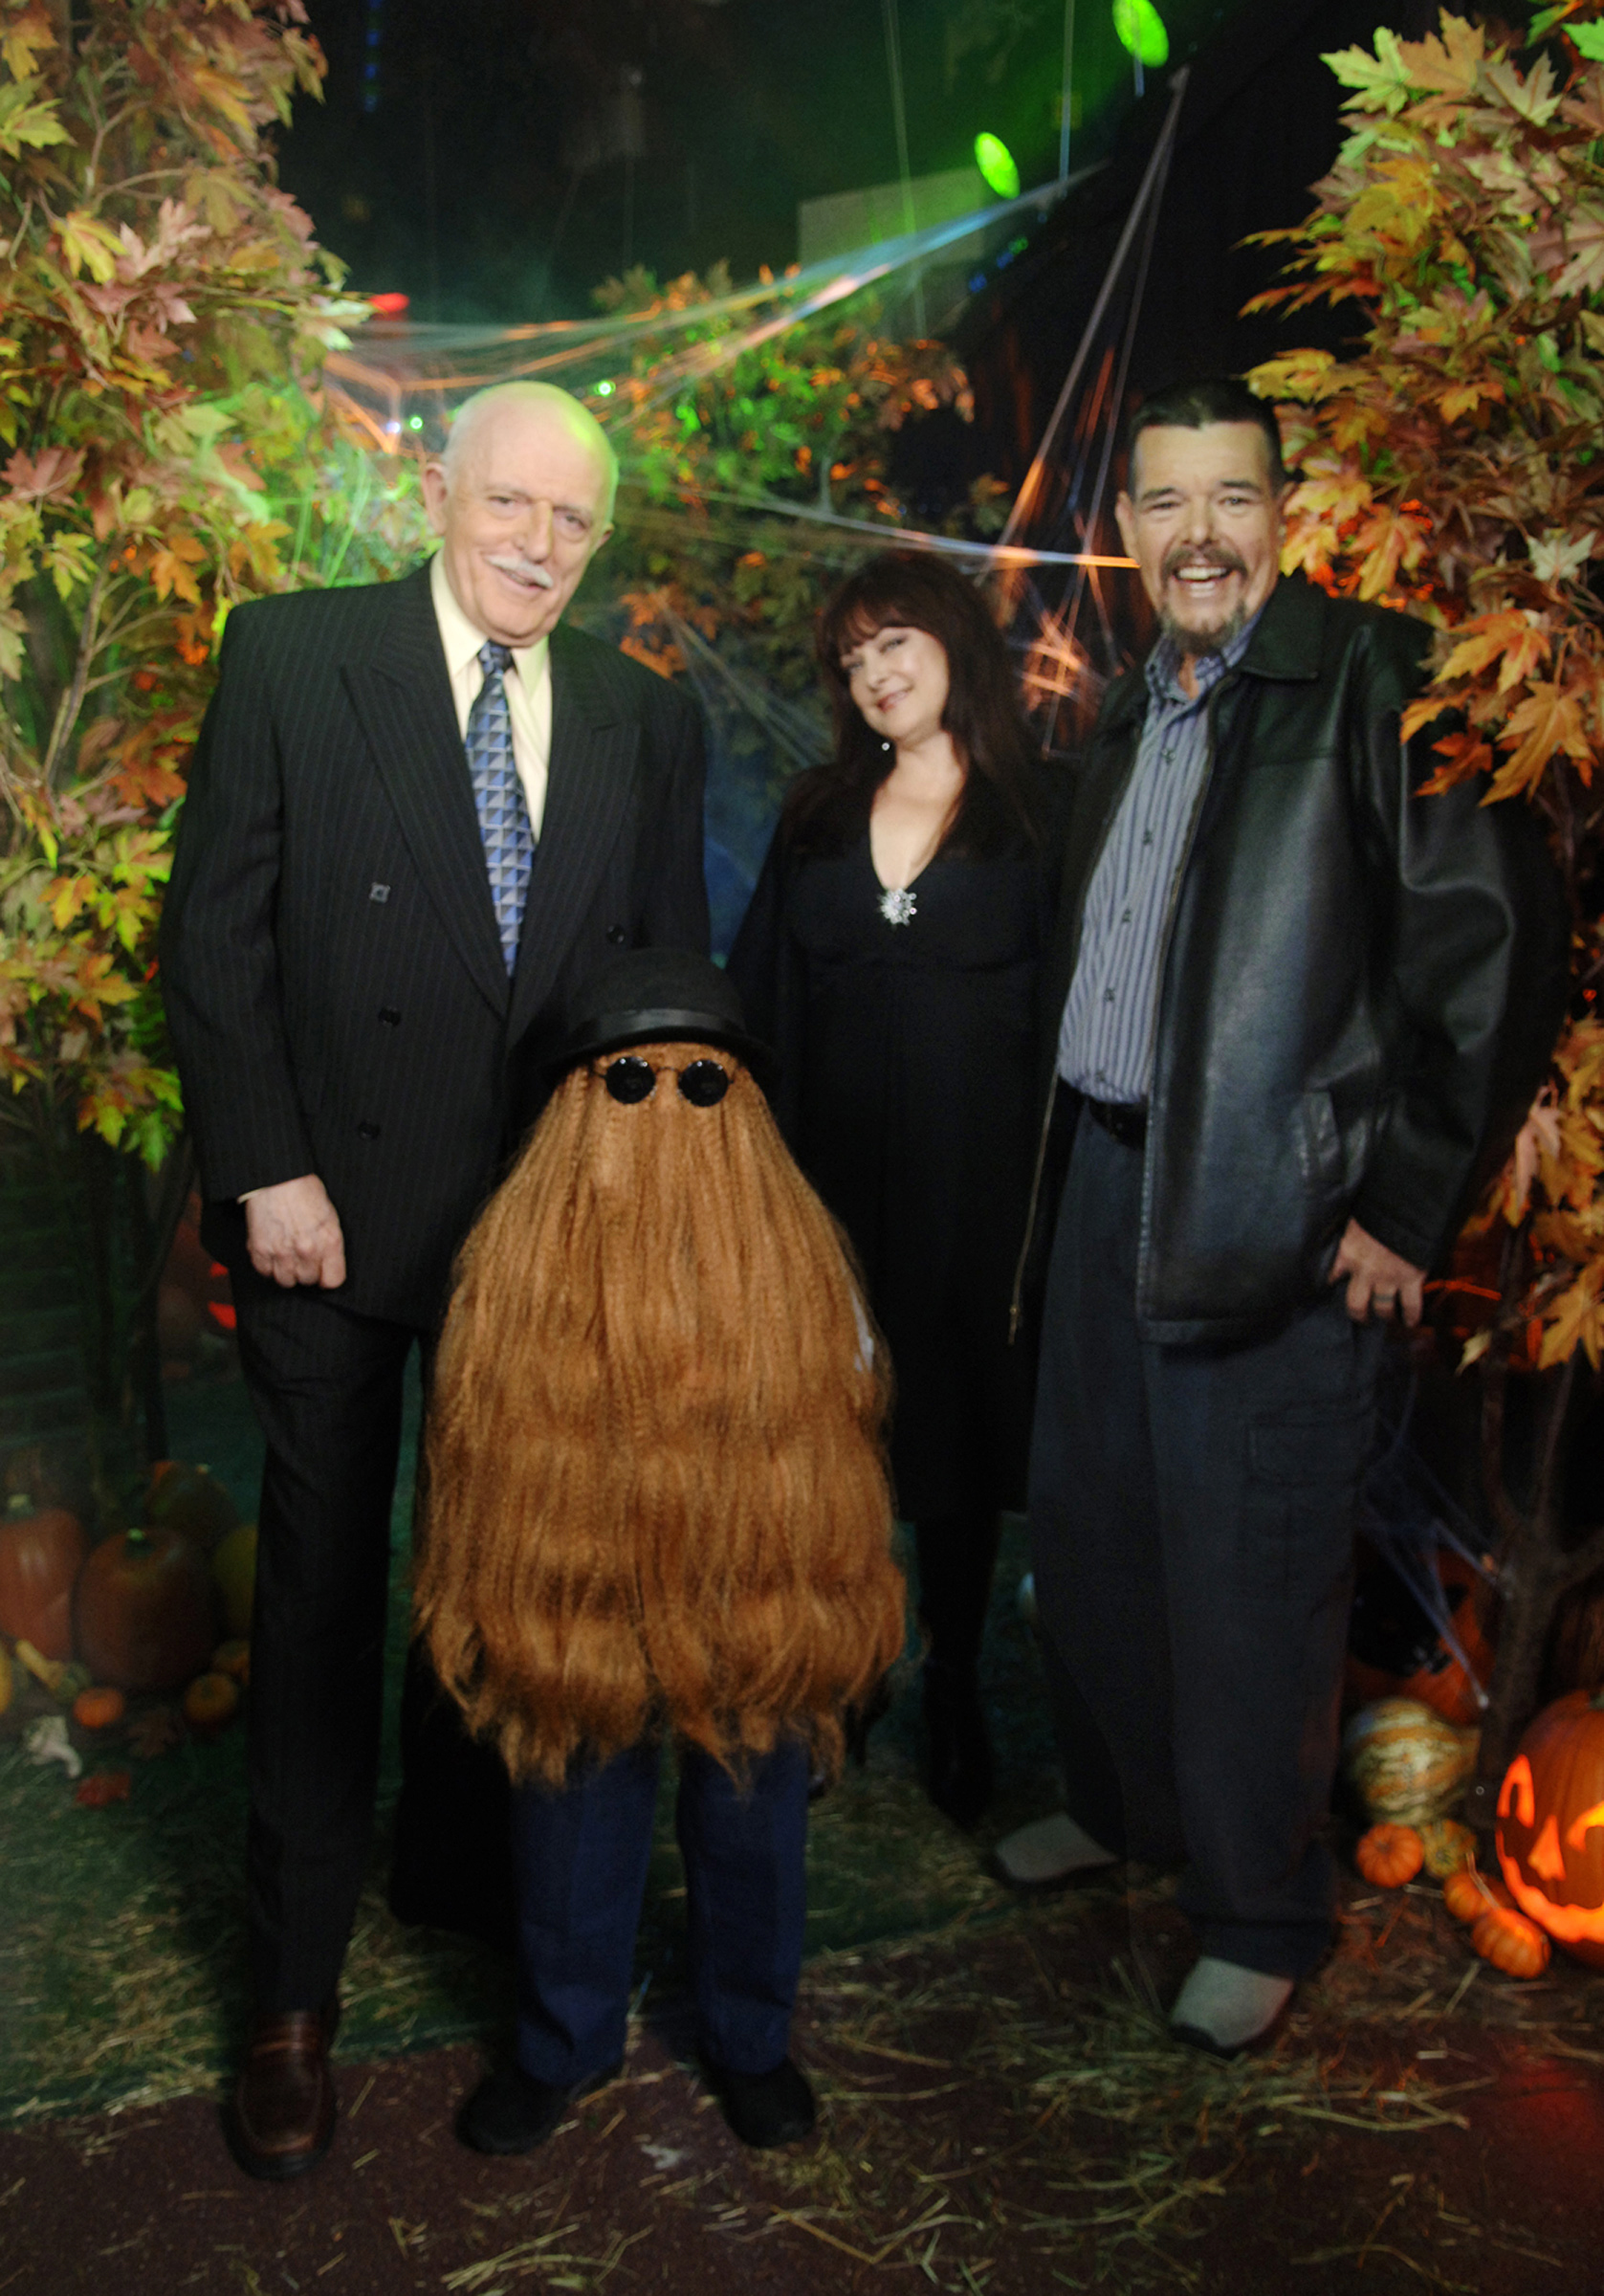 This Oct. 31, 2006, photo provided by ABC, shows some of the original cast of the TV show The Addams Family. From left: John Astin (Gomez Addams), Felix Silla (Cousin Itt), Lisa Loring (Wednesday Addams) and Ken Weatherwax (Pugsley Addams) reunited at a special Halloween edition of ABC's Good Morning America outside their Times Square studios in New York City